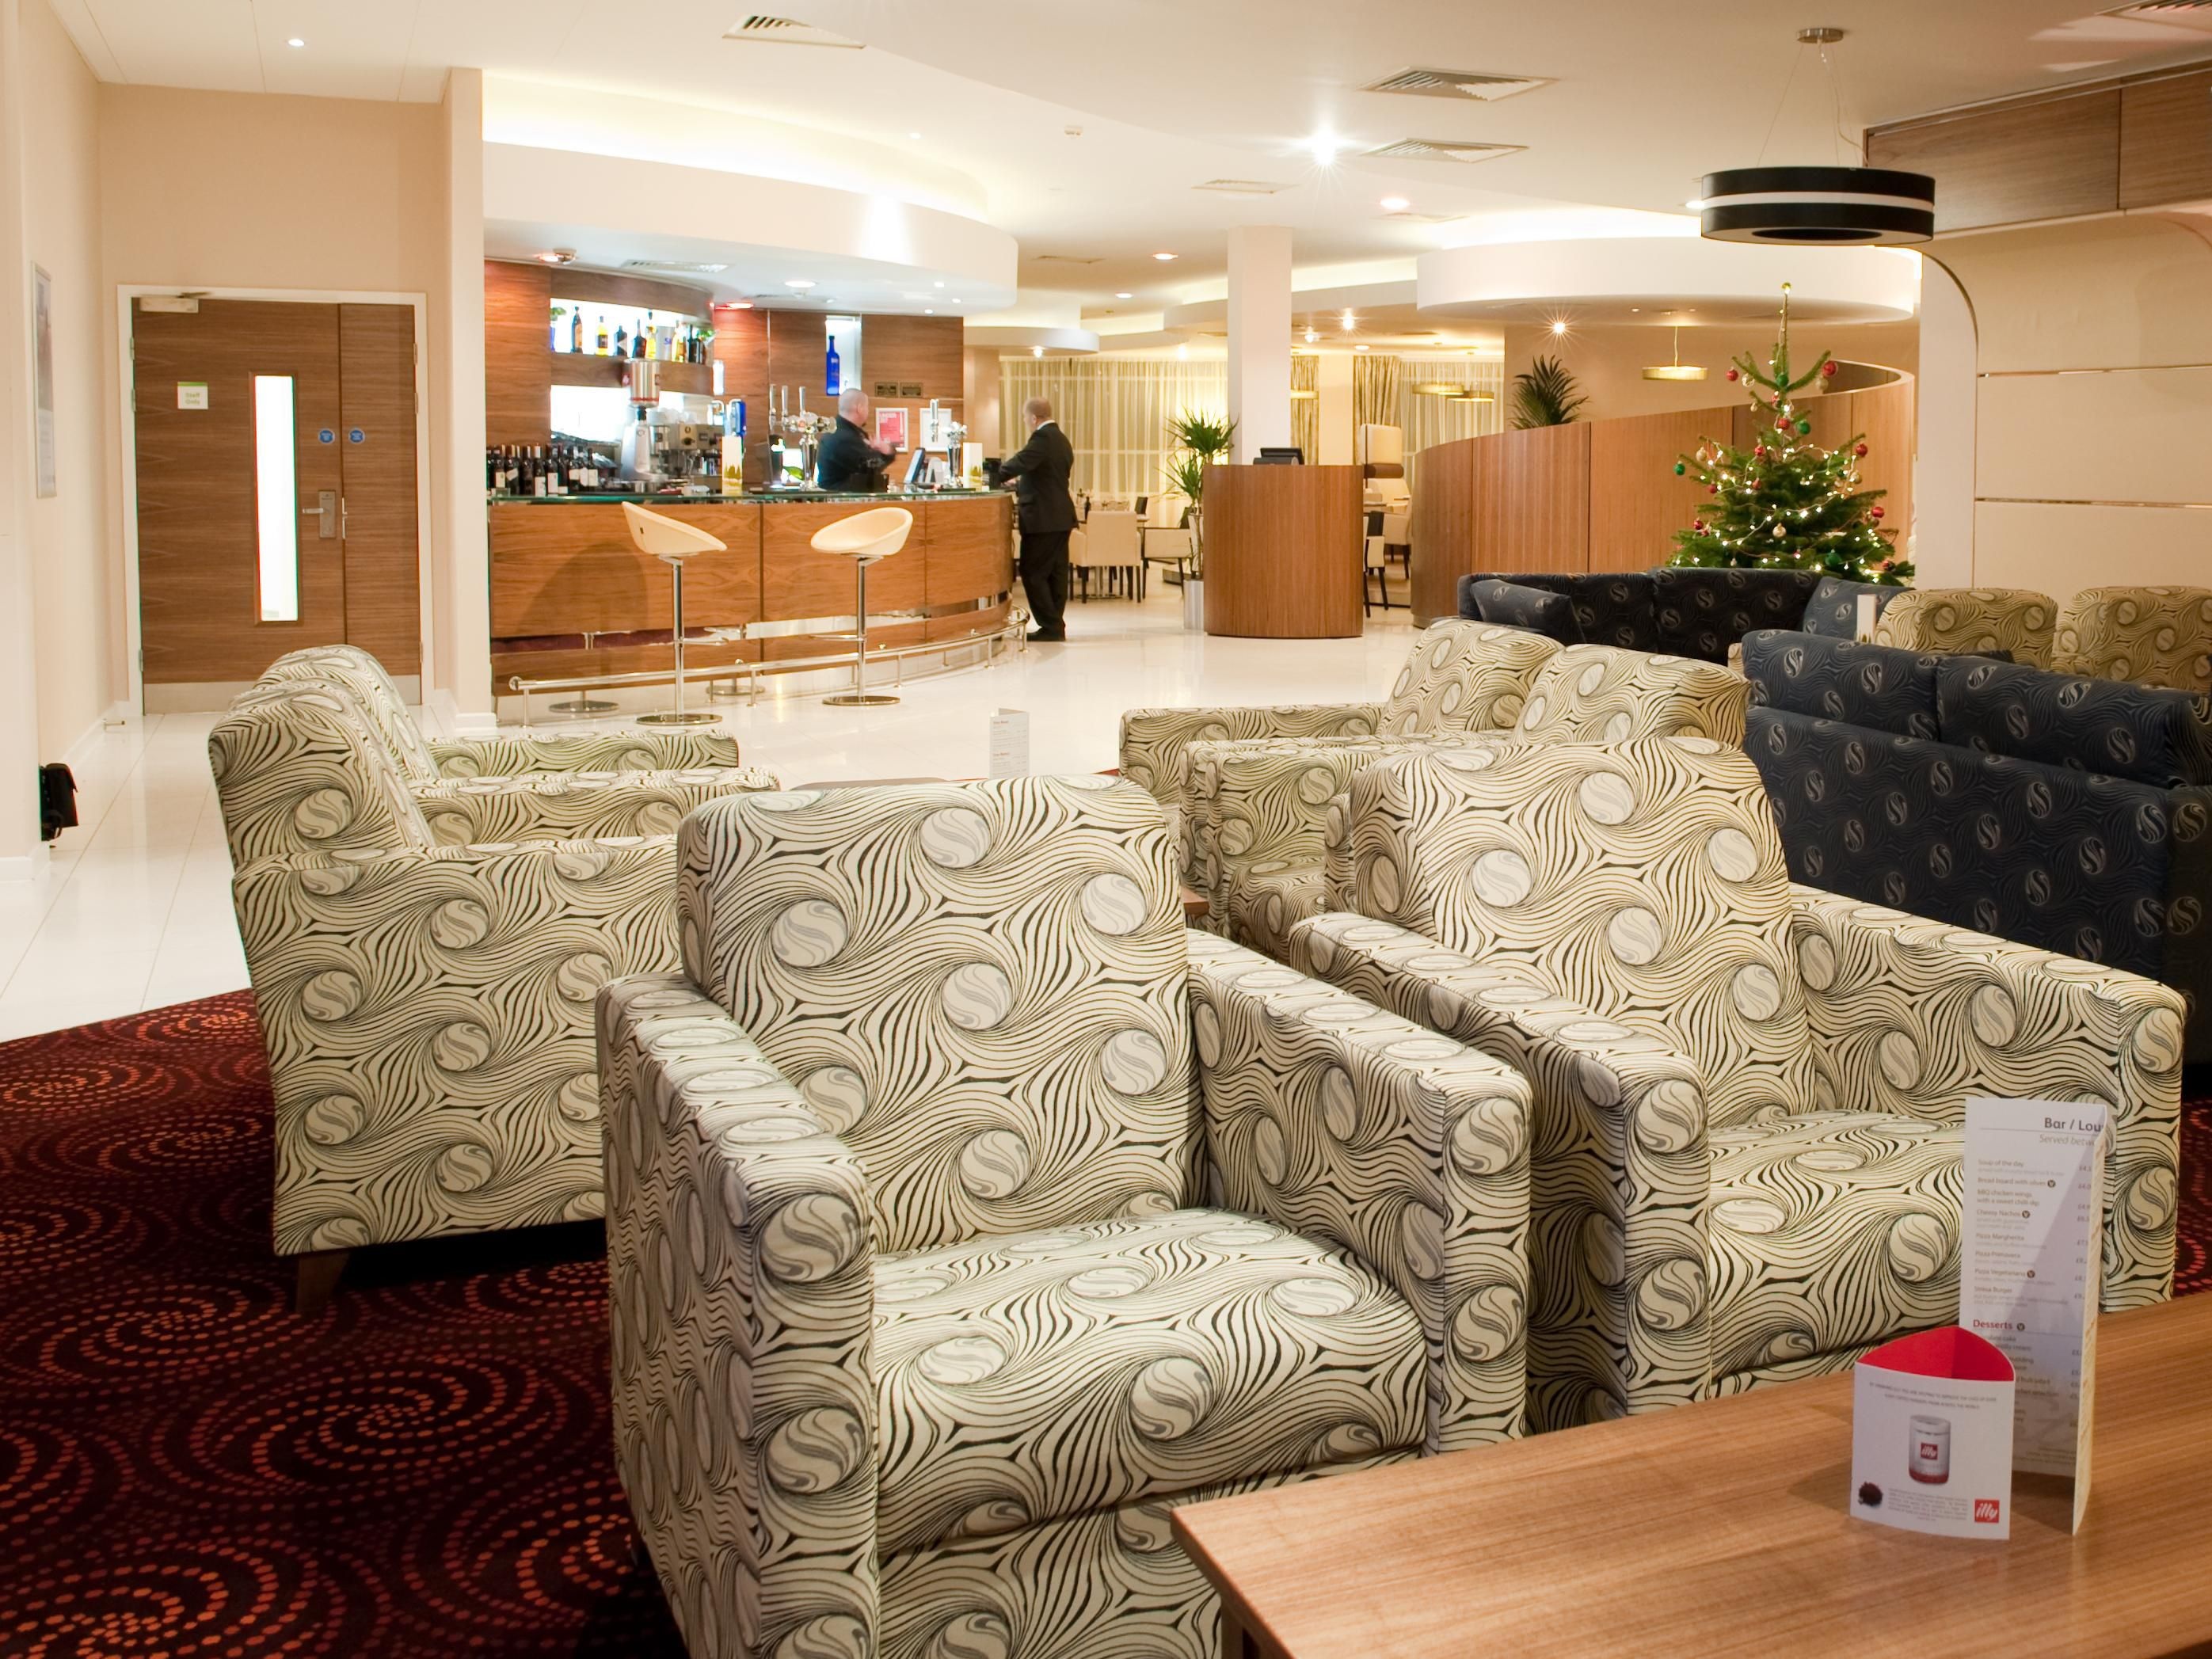 Hotel Bar and Lounge